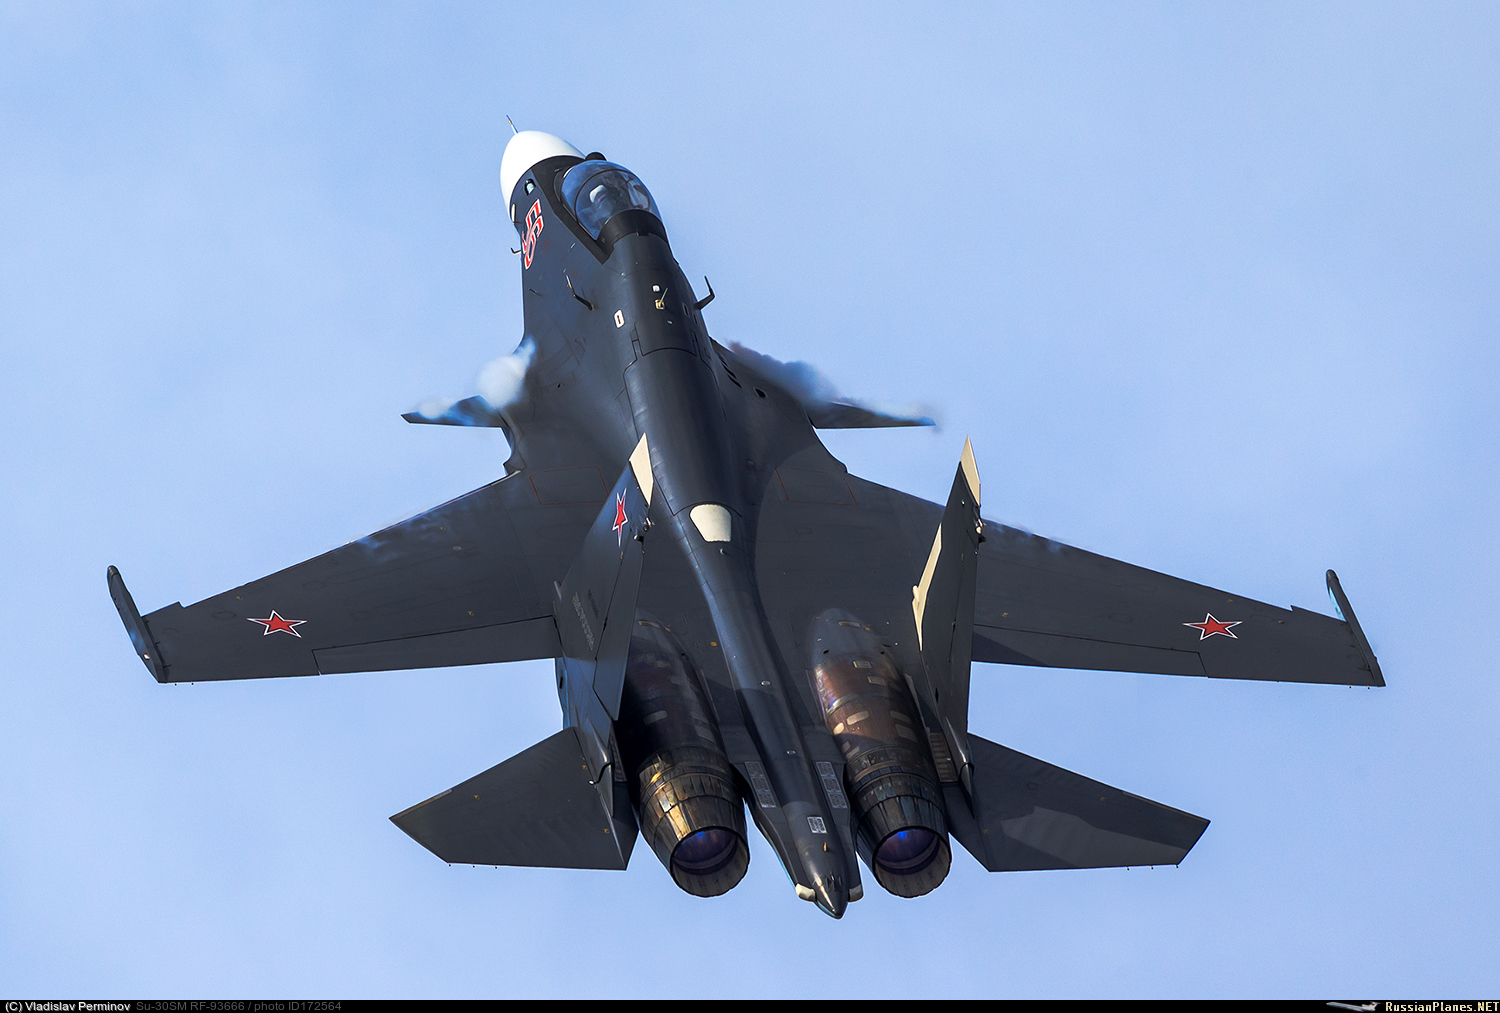 http://russianplanes.net/images/to173000/172564.jpg